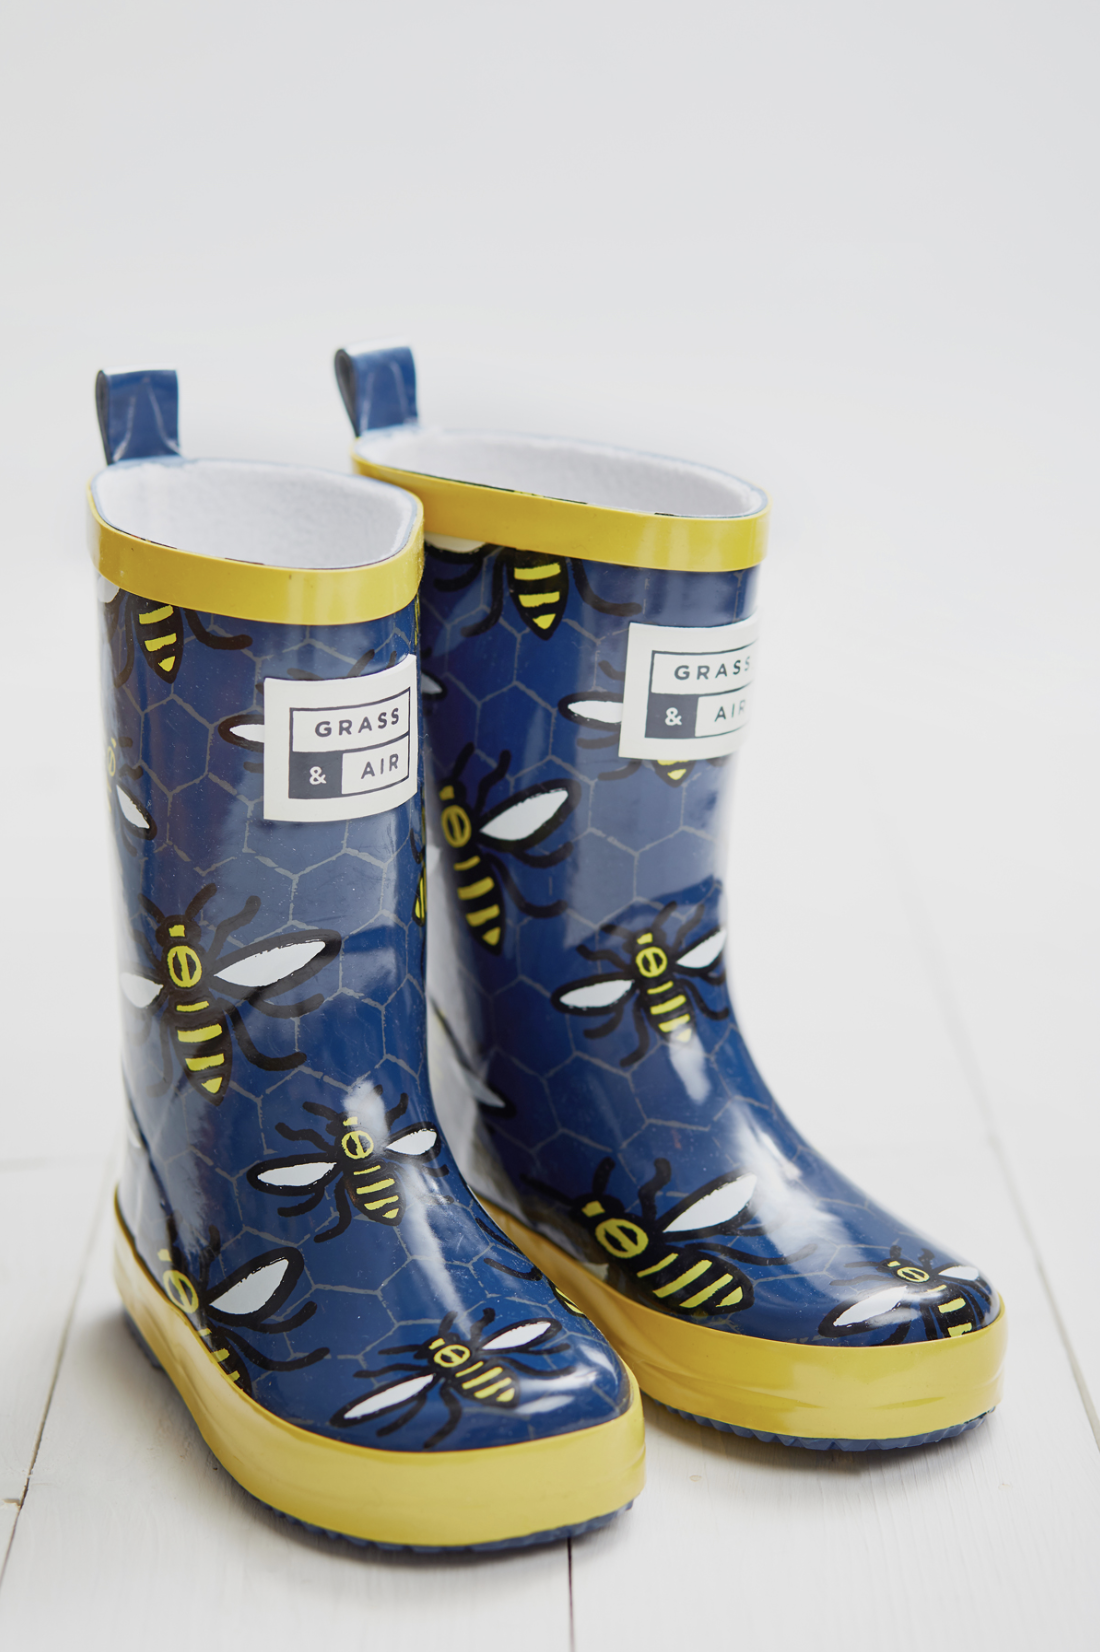 Worker Bee Wellies | Grass & Air